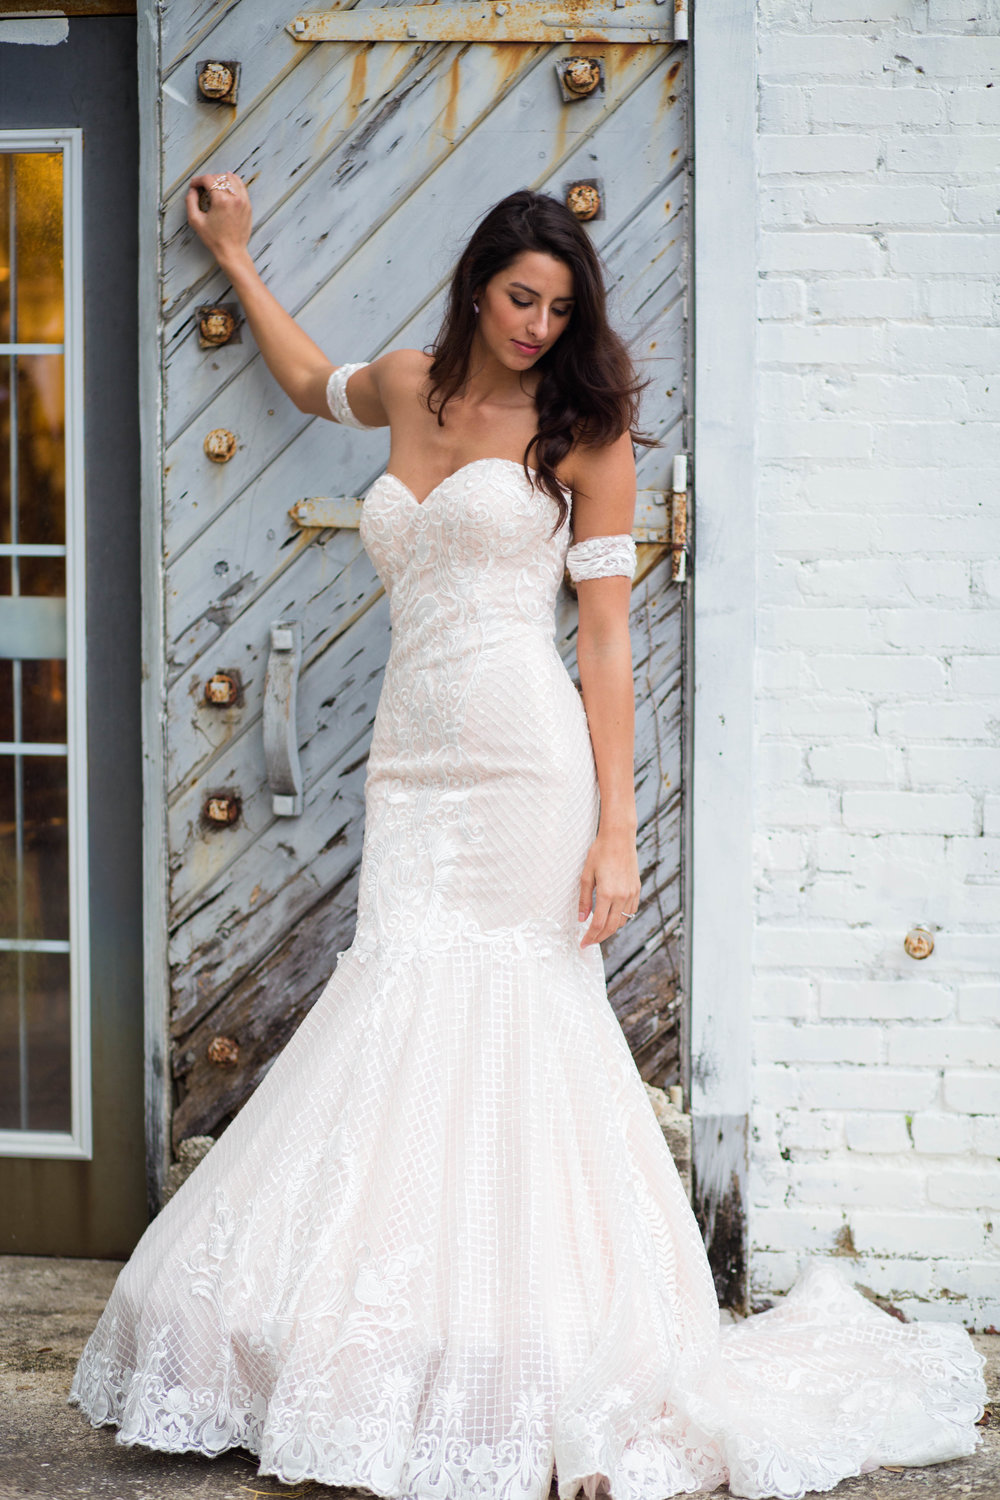 Dresses by Jalona Marie Bridal